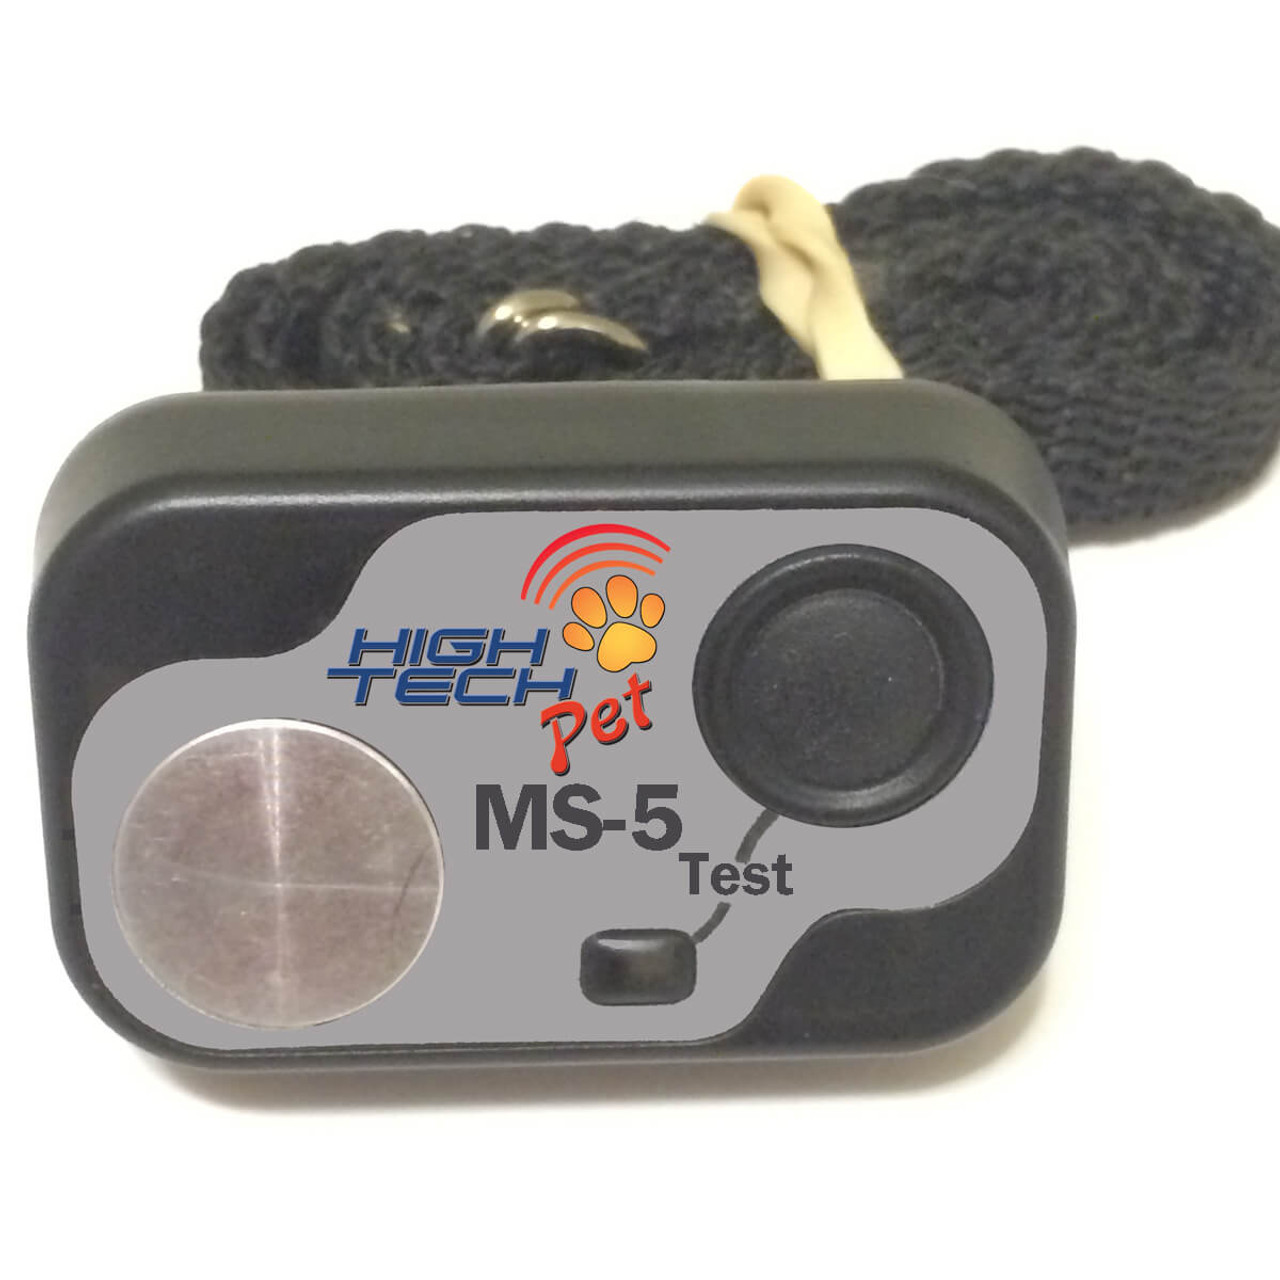 High Tech Electronic Motorized Pet Doors MS-5 Key is water proof and comes standard with High Tech doggy doors